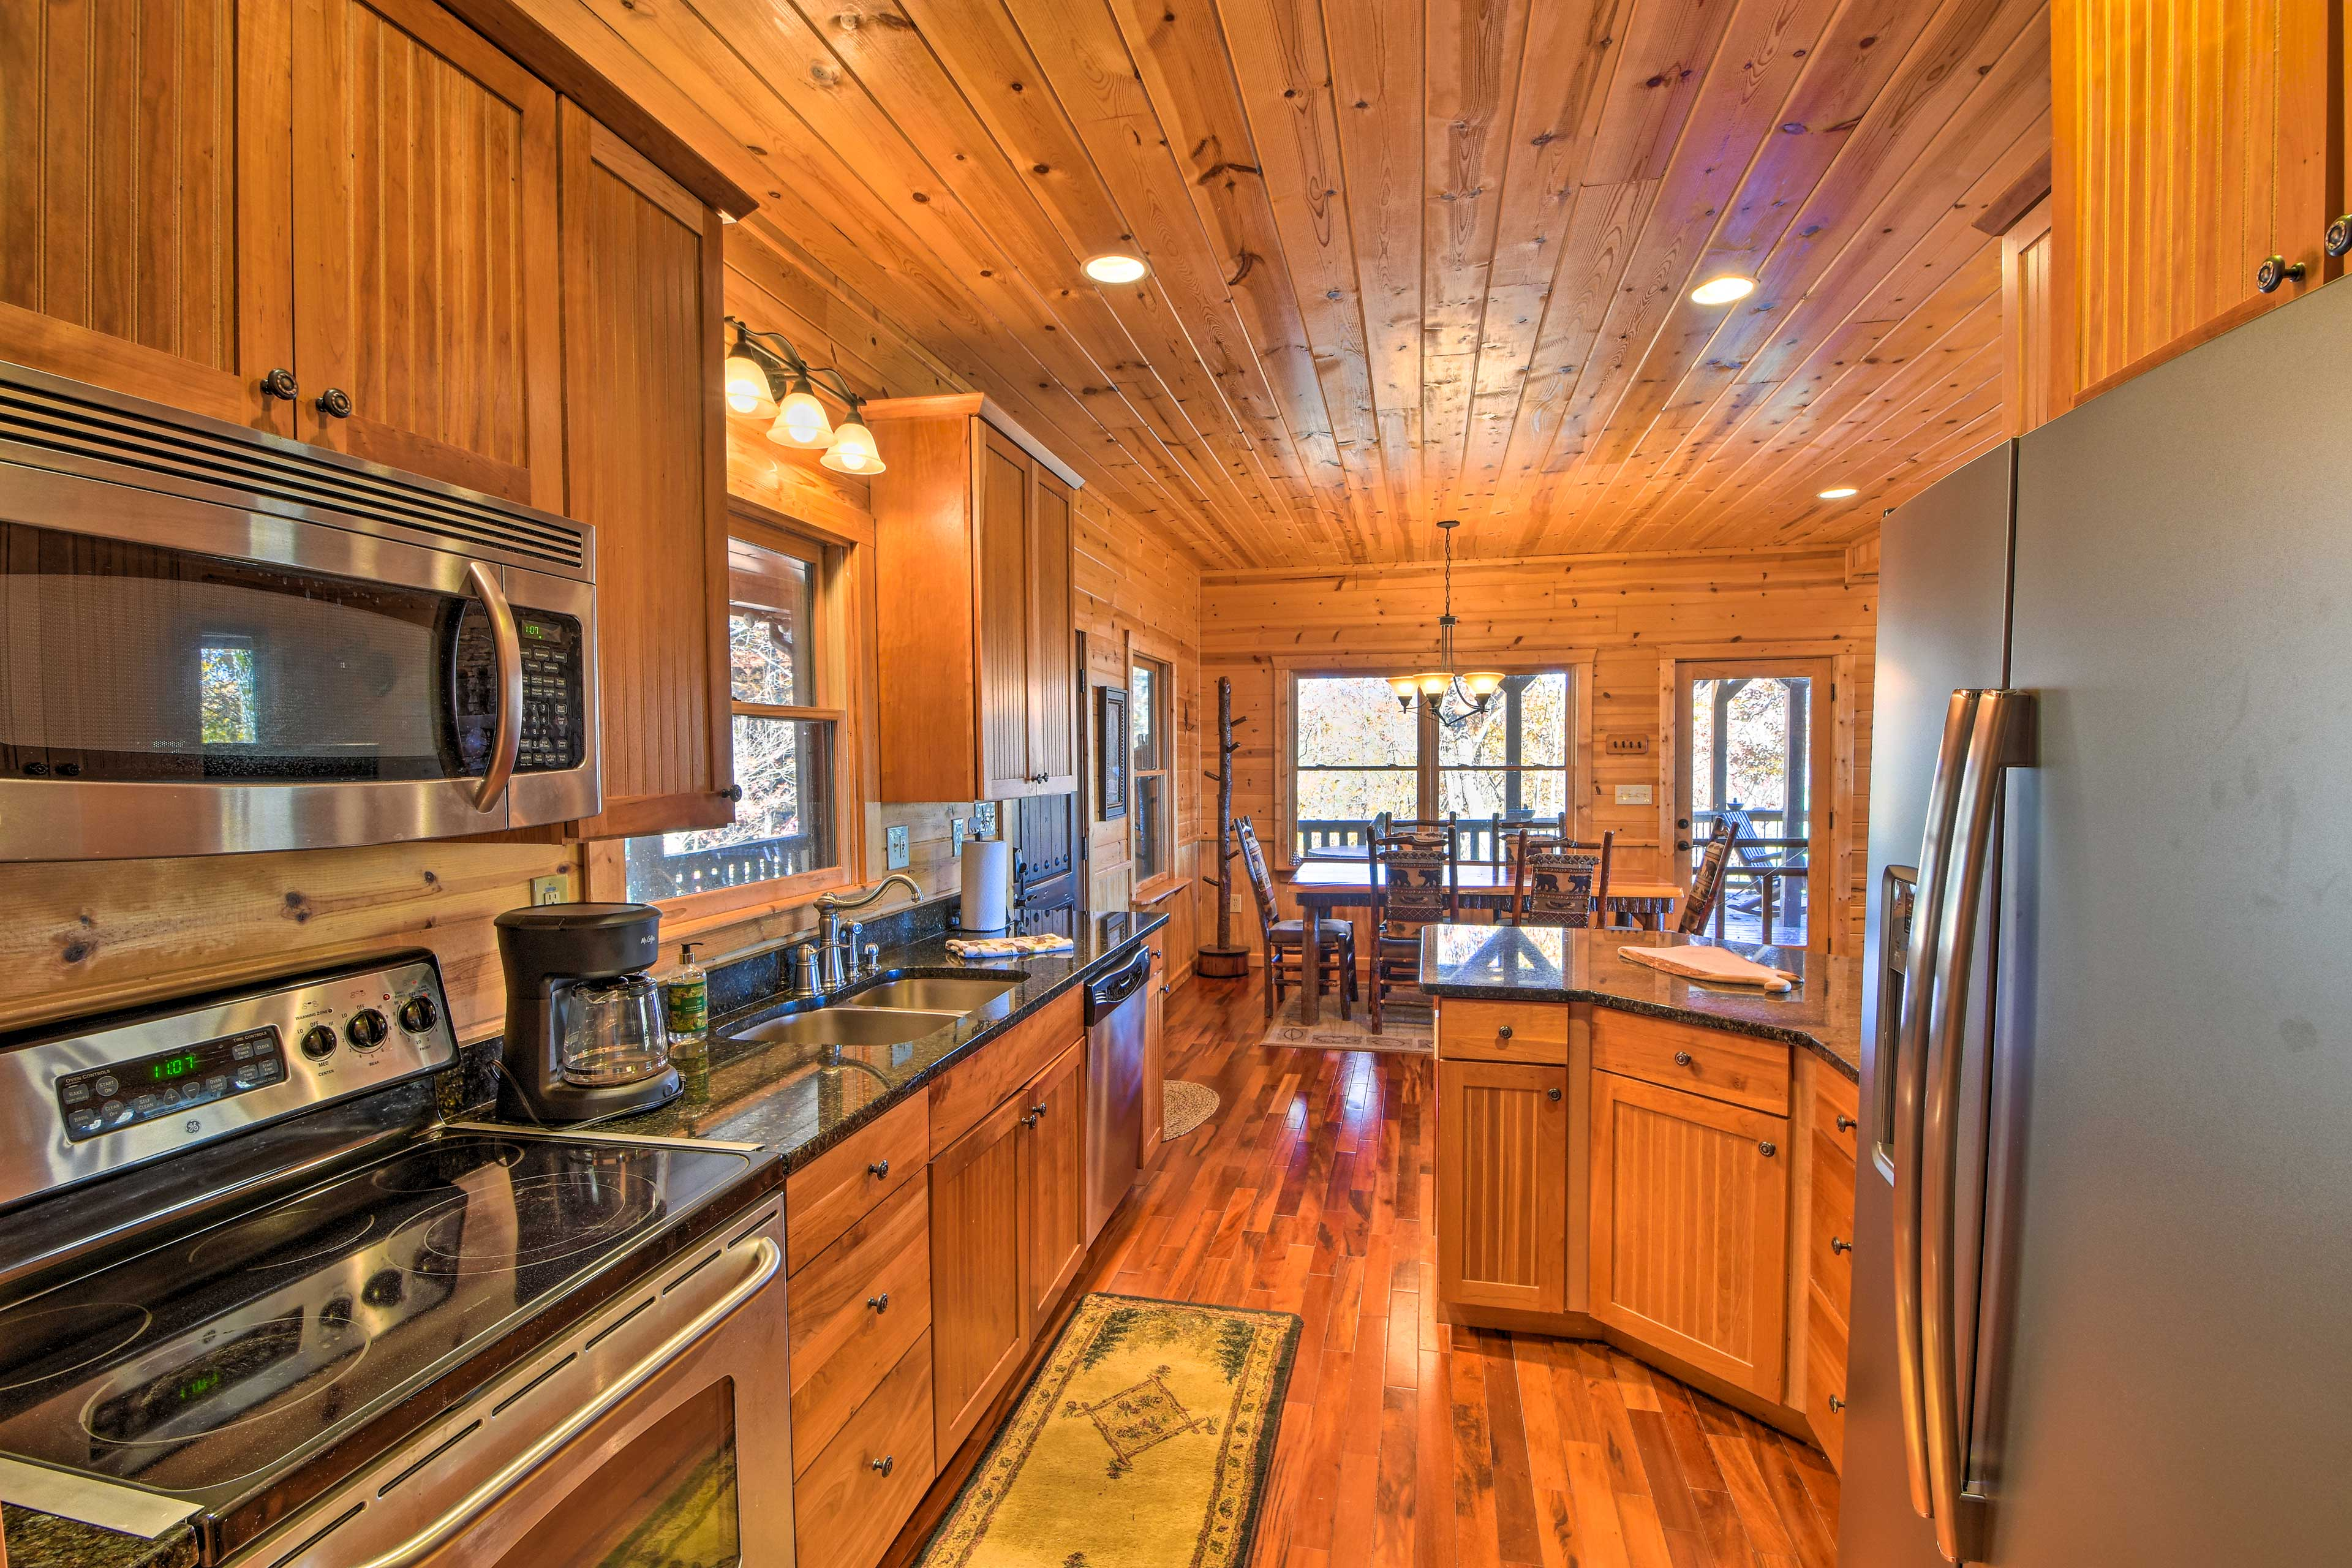 Enjoy whipping up your favorite recipes in this kitchen.